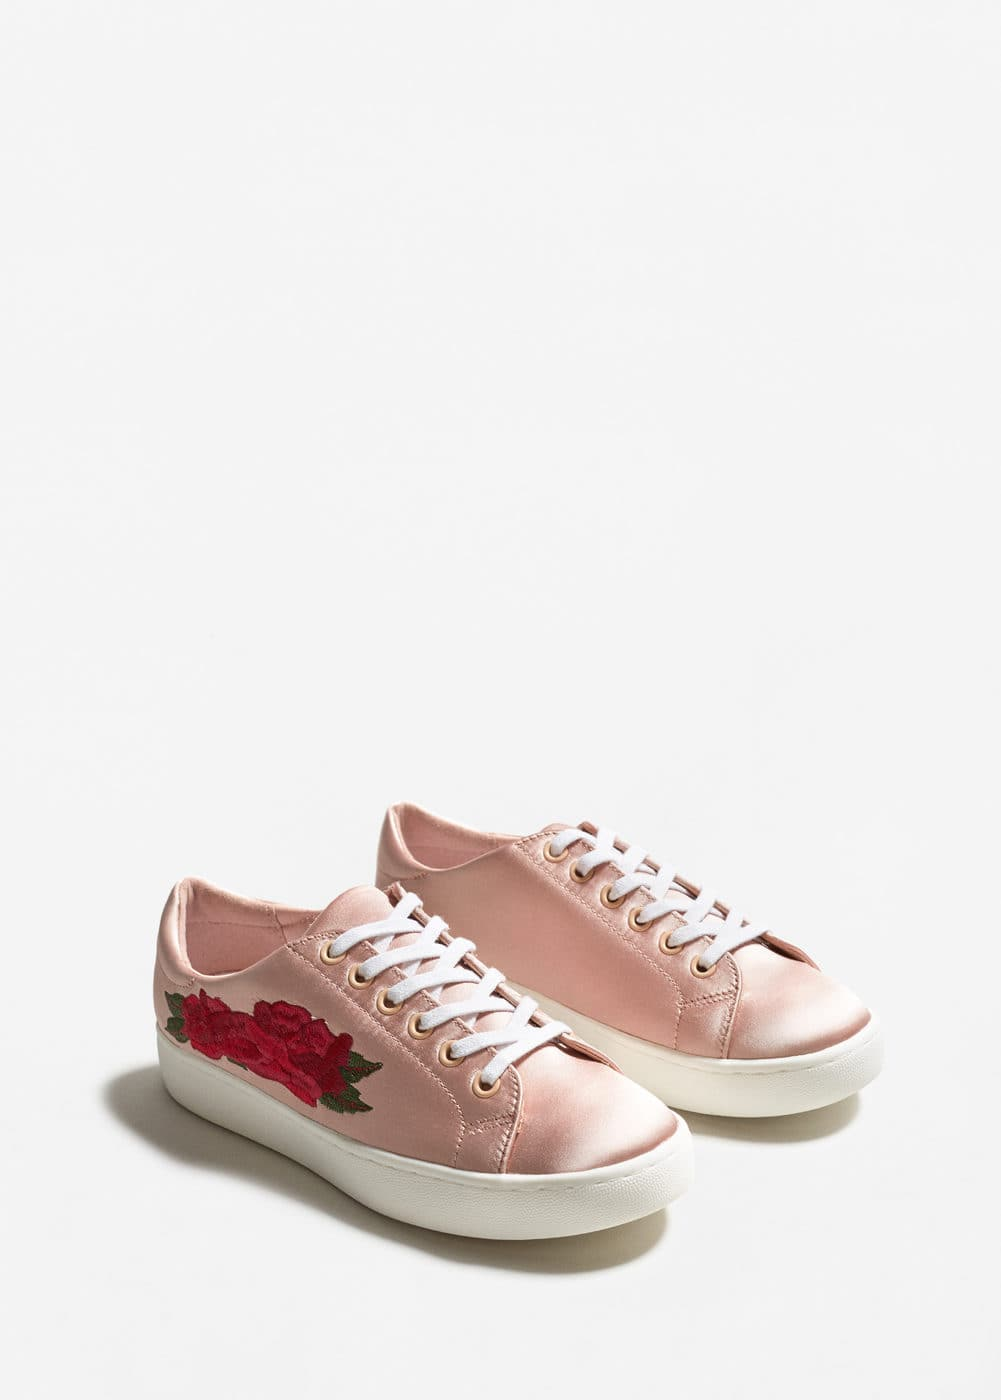 Bestickte sneakers in satin-optik | MANGO